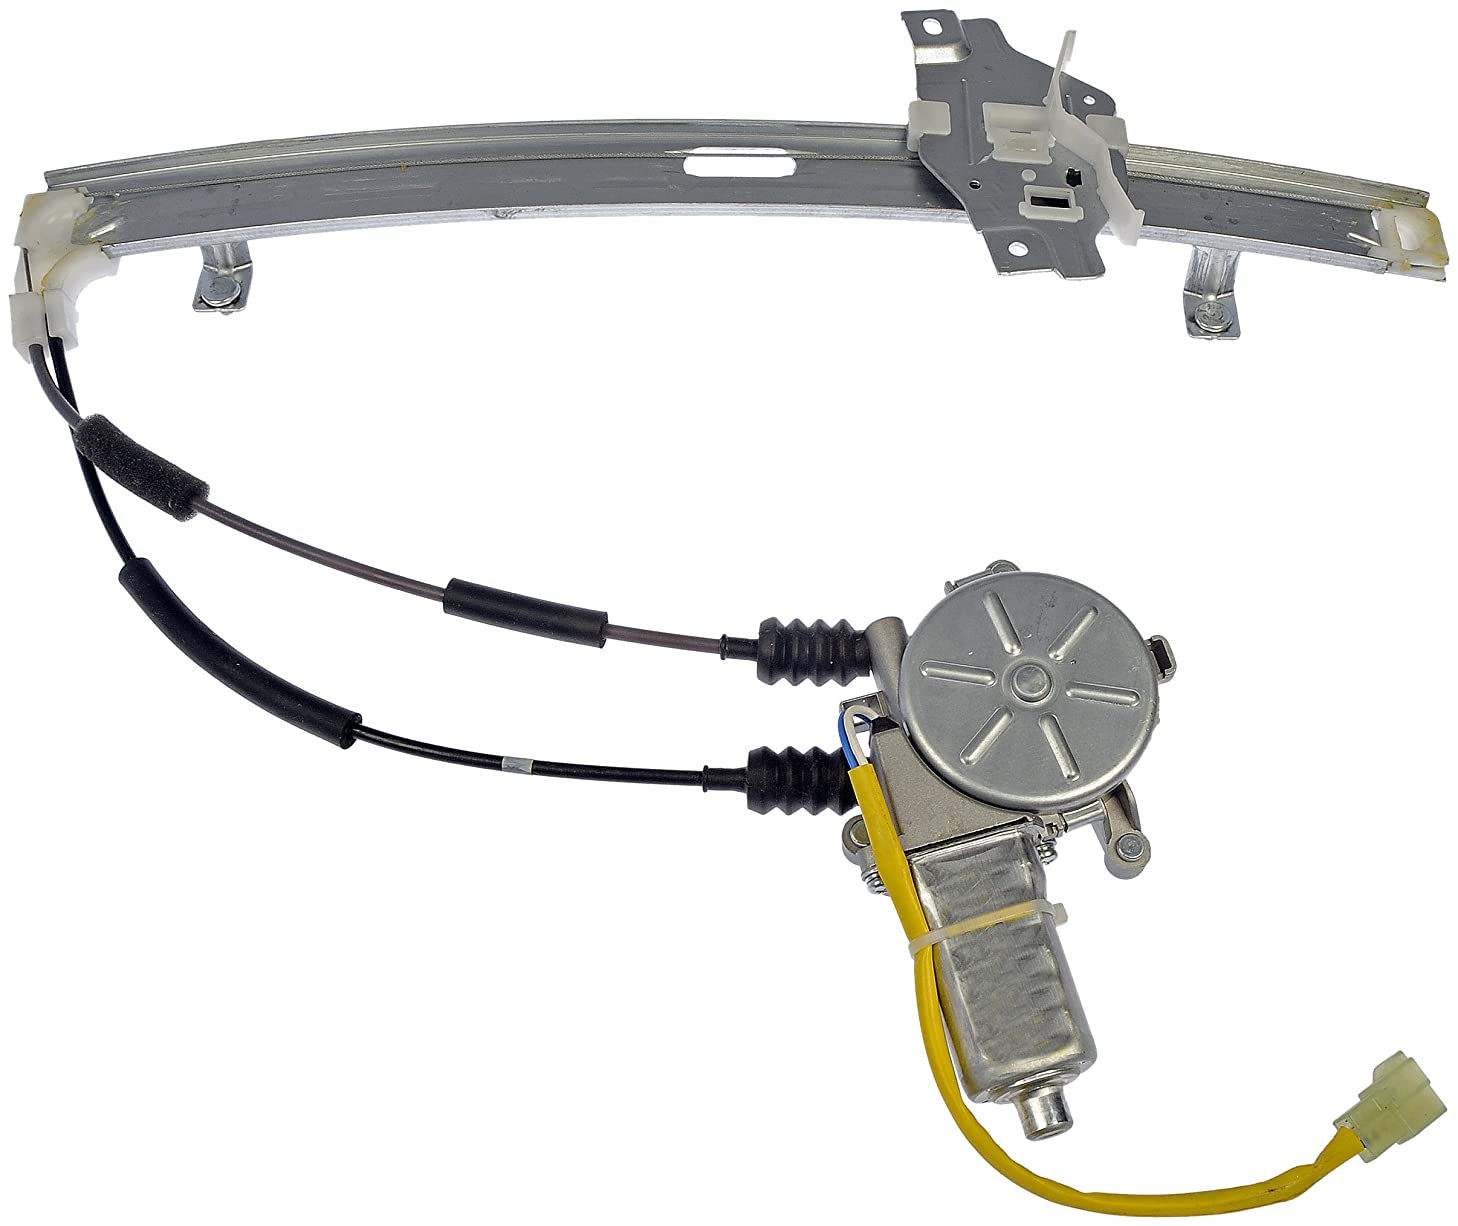 Dorman 748-378 Front Driver Side Replacement Power Window Regulator with Motor for Kia Sephia